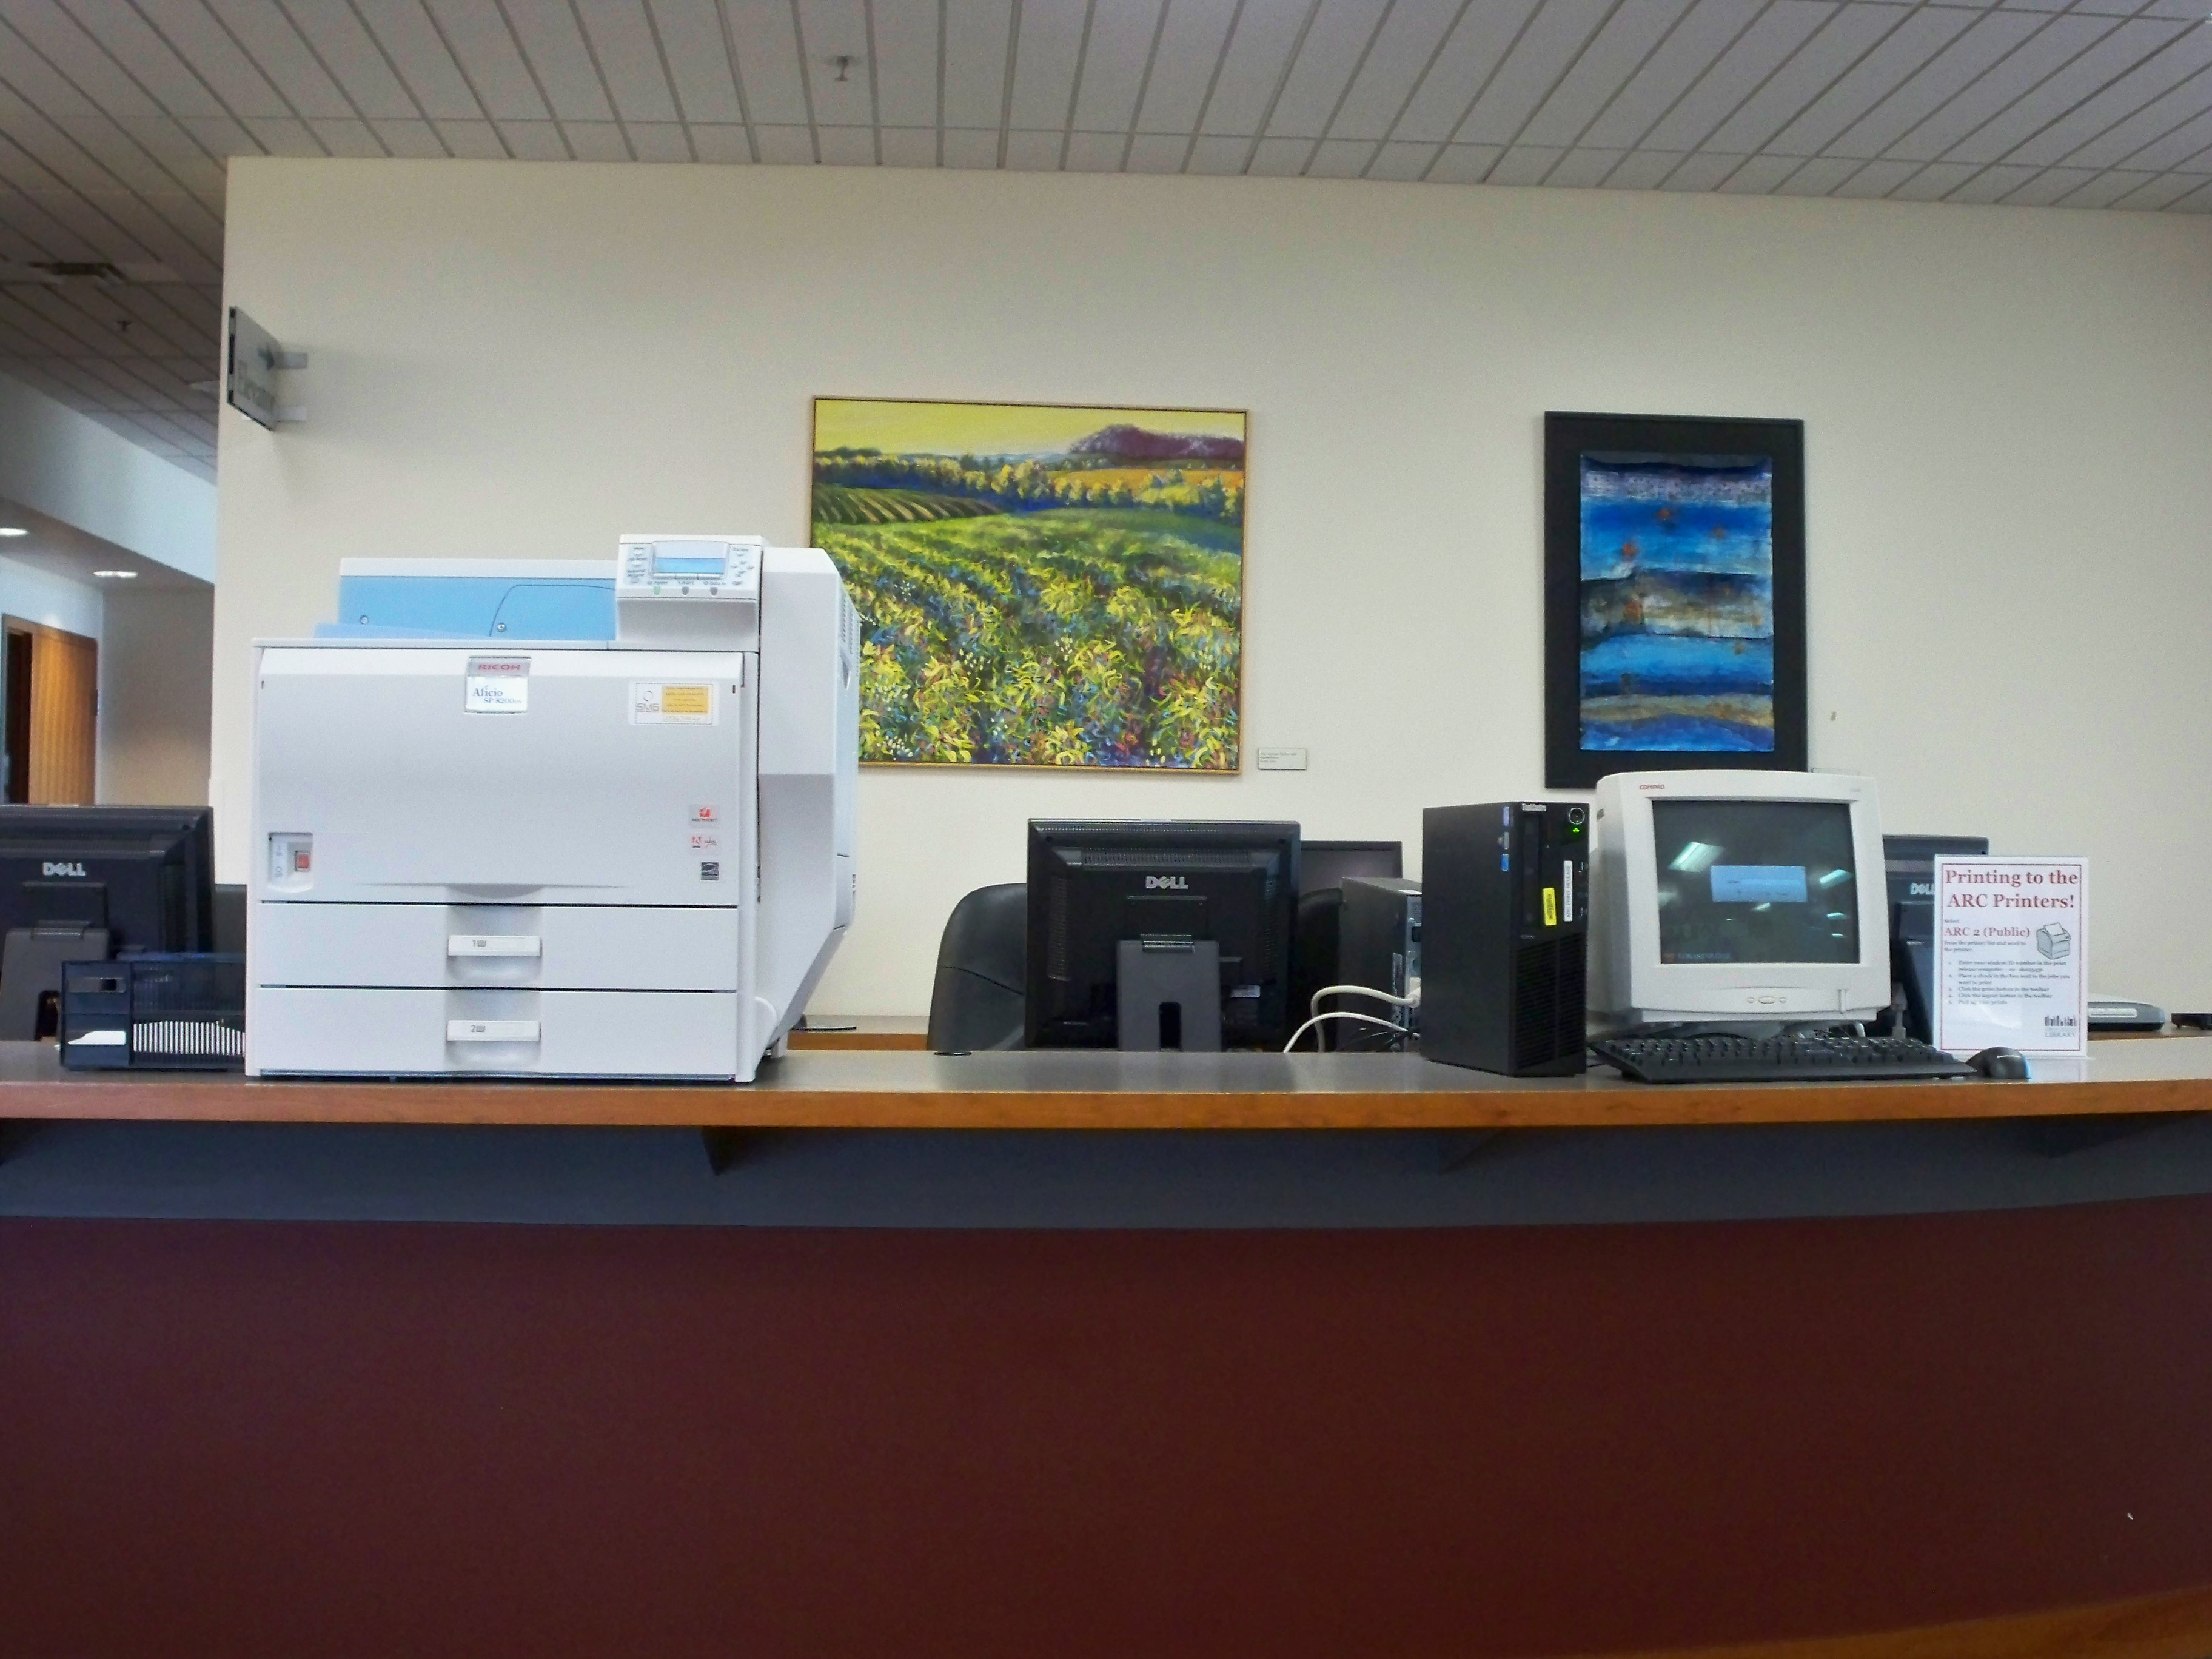 picture of public printer